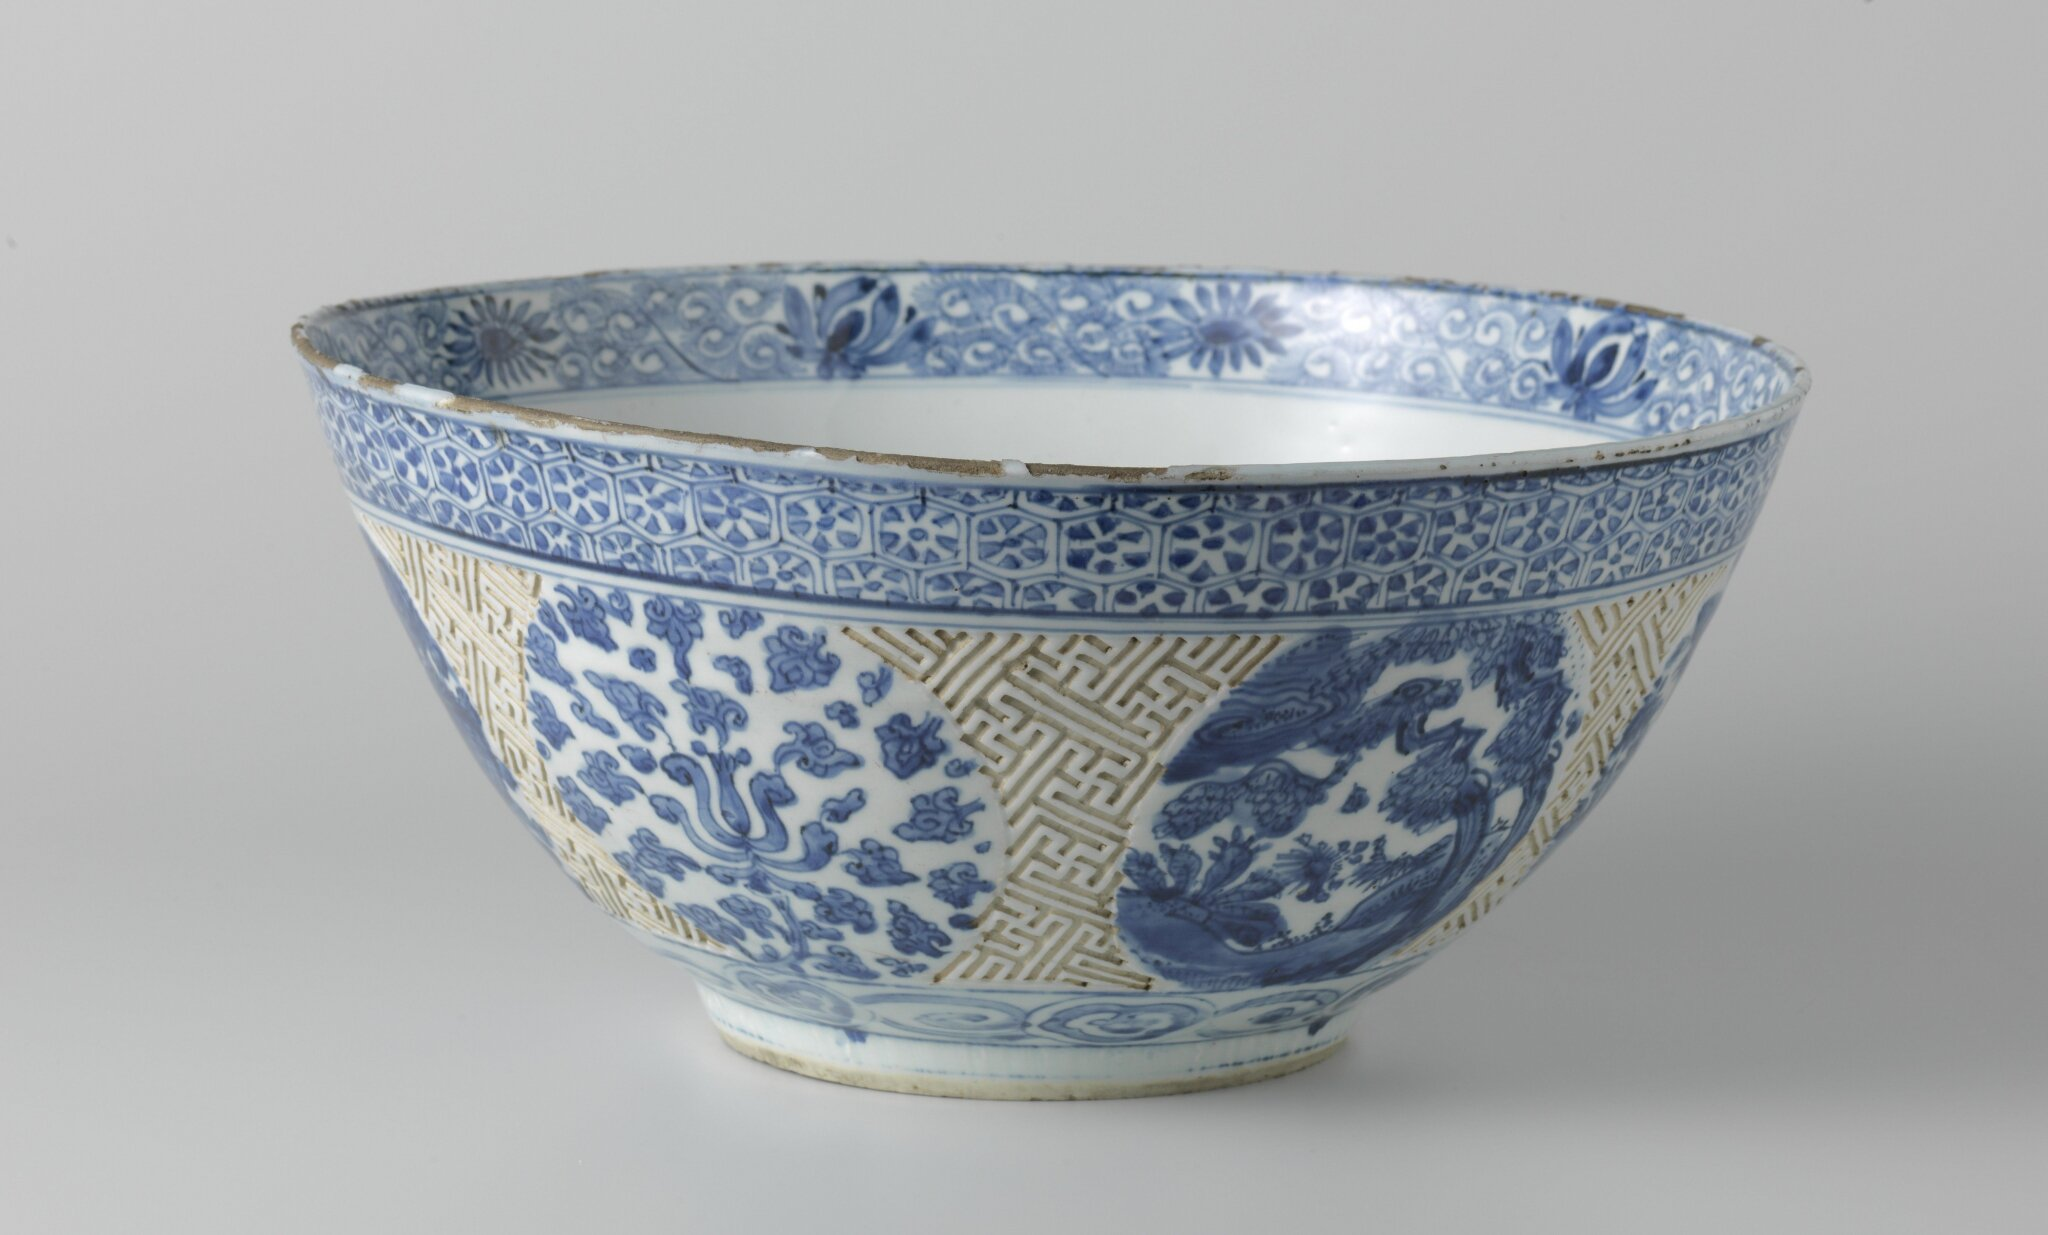 Bowl, Transition period, c